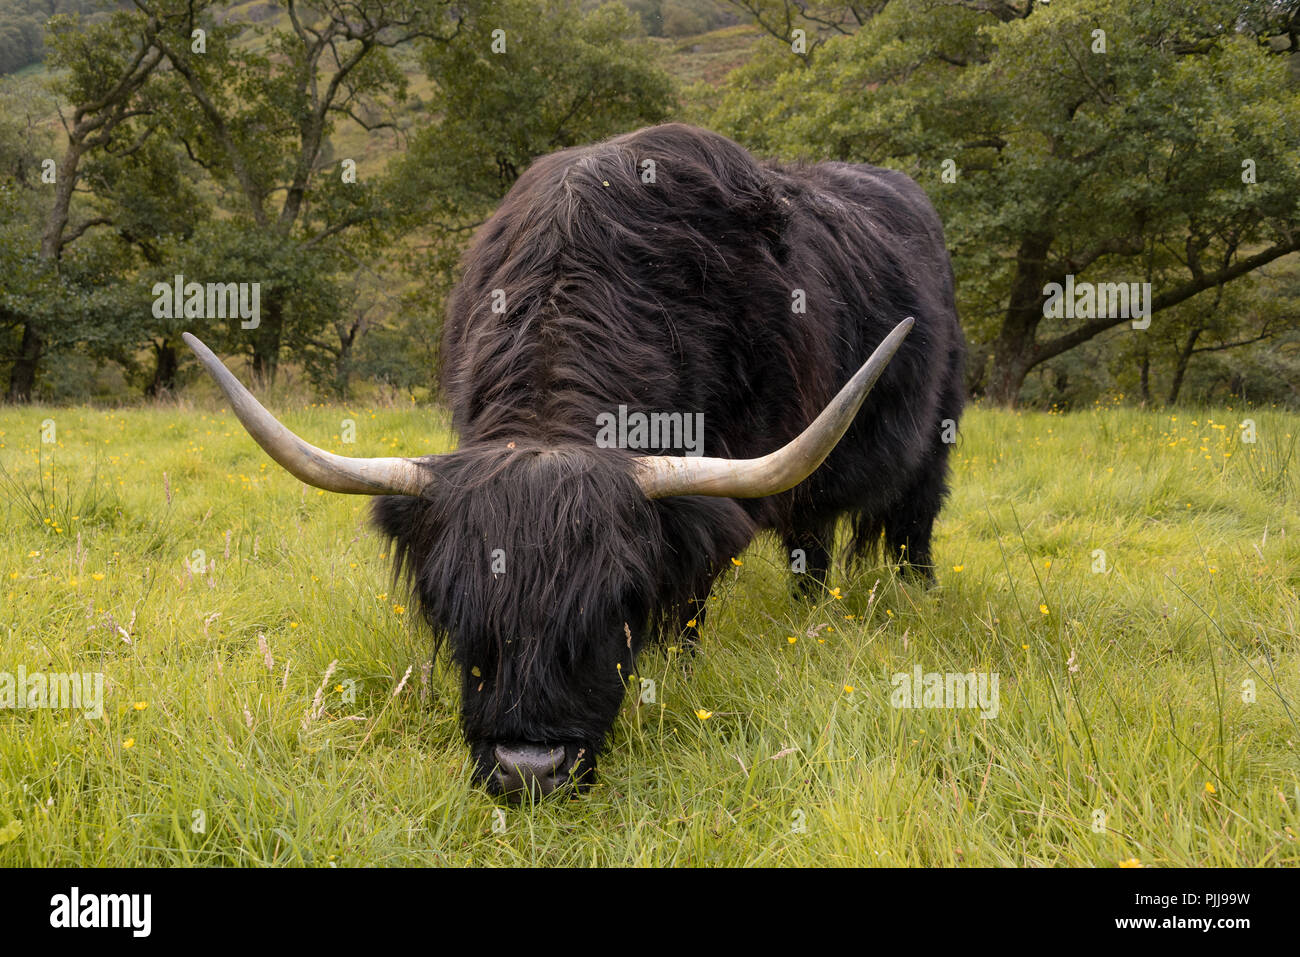 Scottish long coat Highland cattle in Fort William near Ben Nevis, Scotland, UK Stock Photo